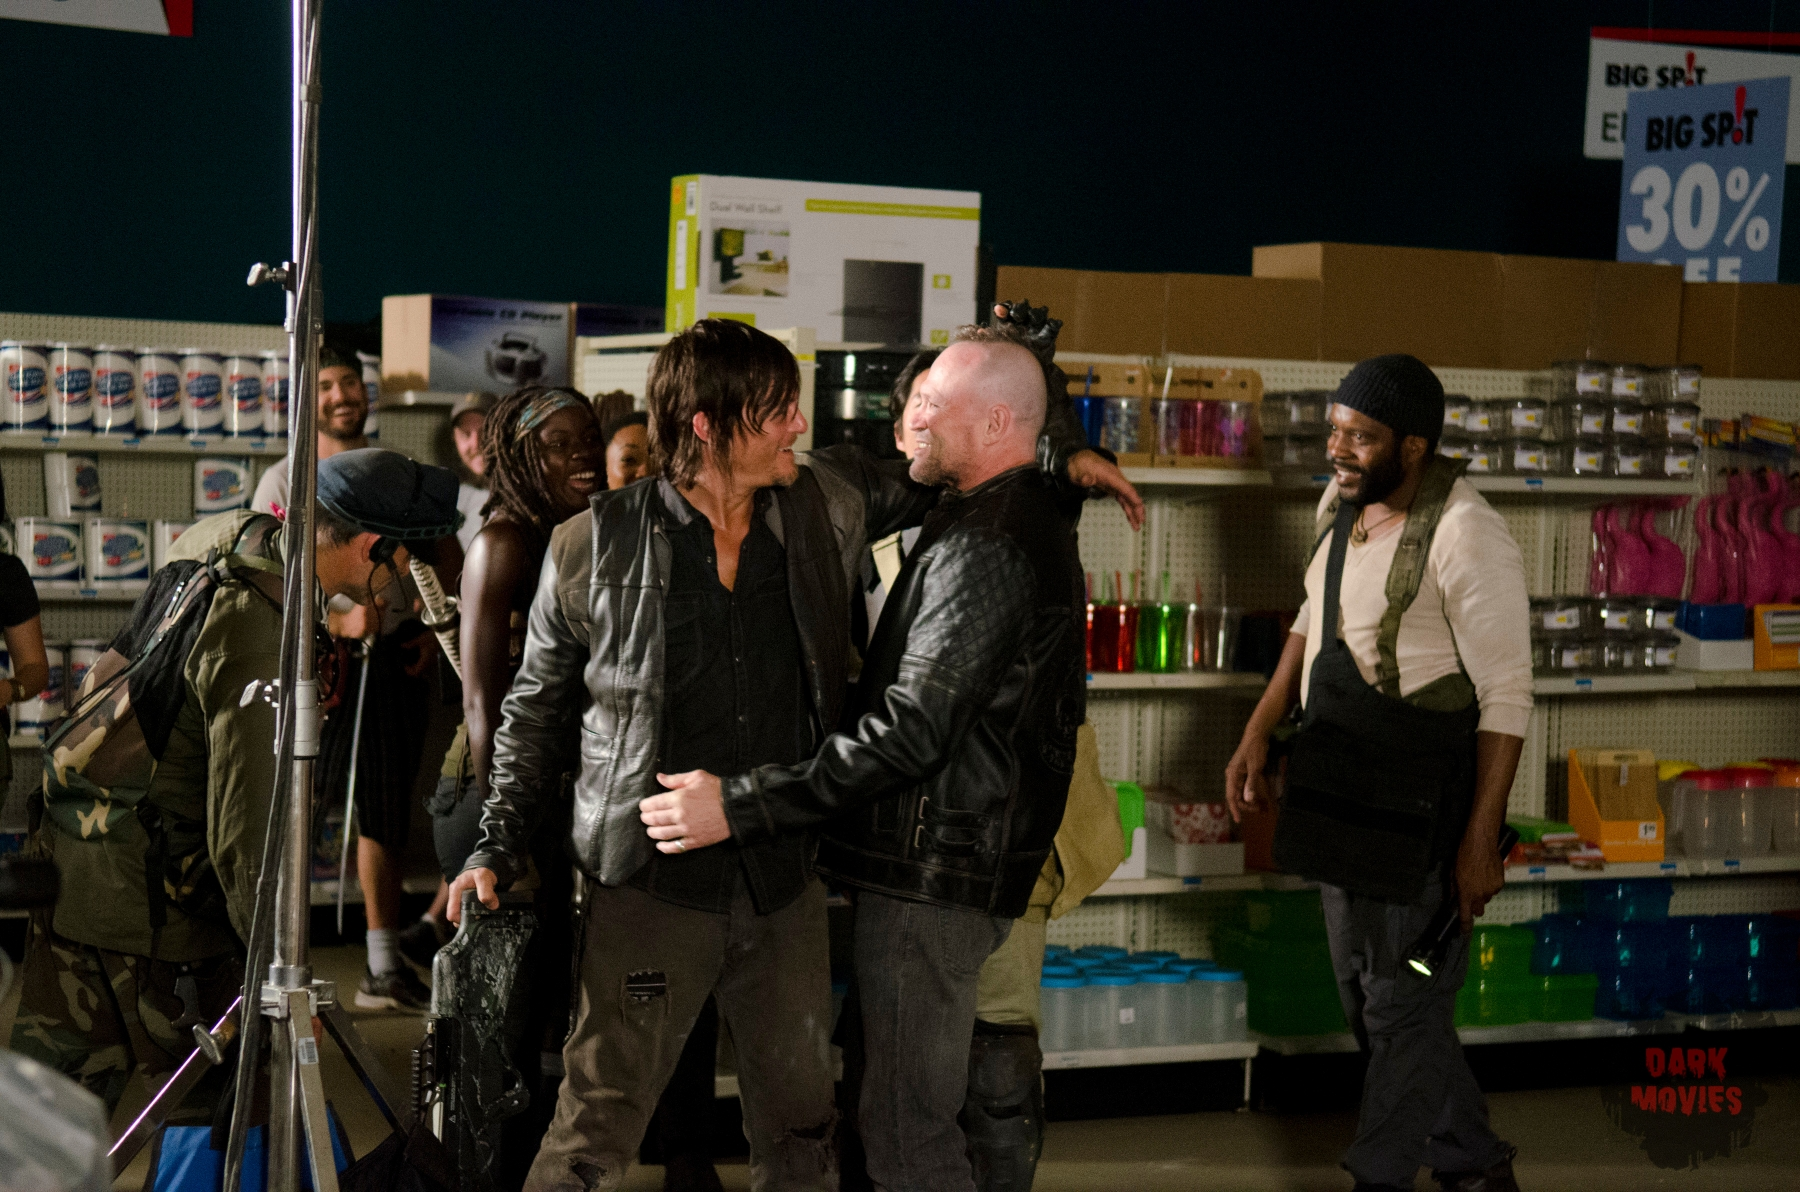 Daryl Dixon (Norman Reedus) and Michael Rooker - The Walking Dead _ Season 4, Episode 1 - Photo Credit: Gene Page/AMC